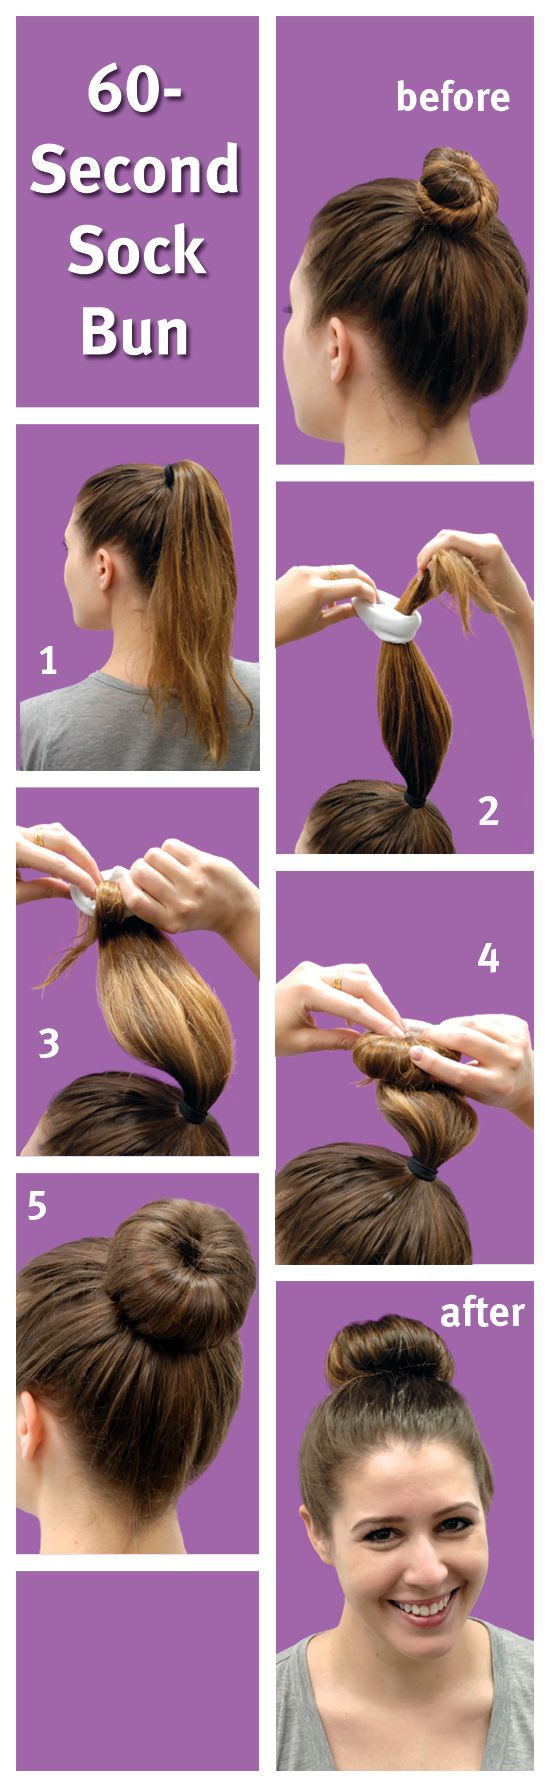 60-Second Sock Bun – Simply Stated Blogs | Real Simple